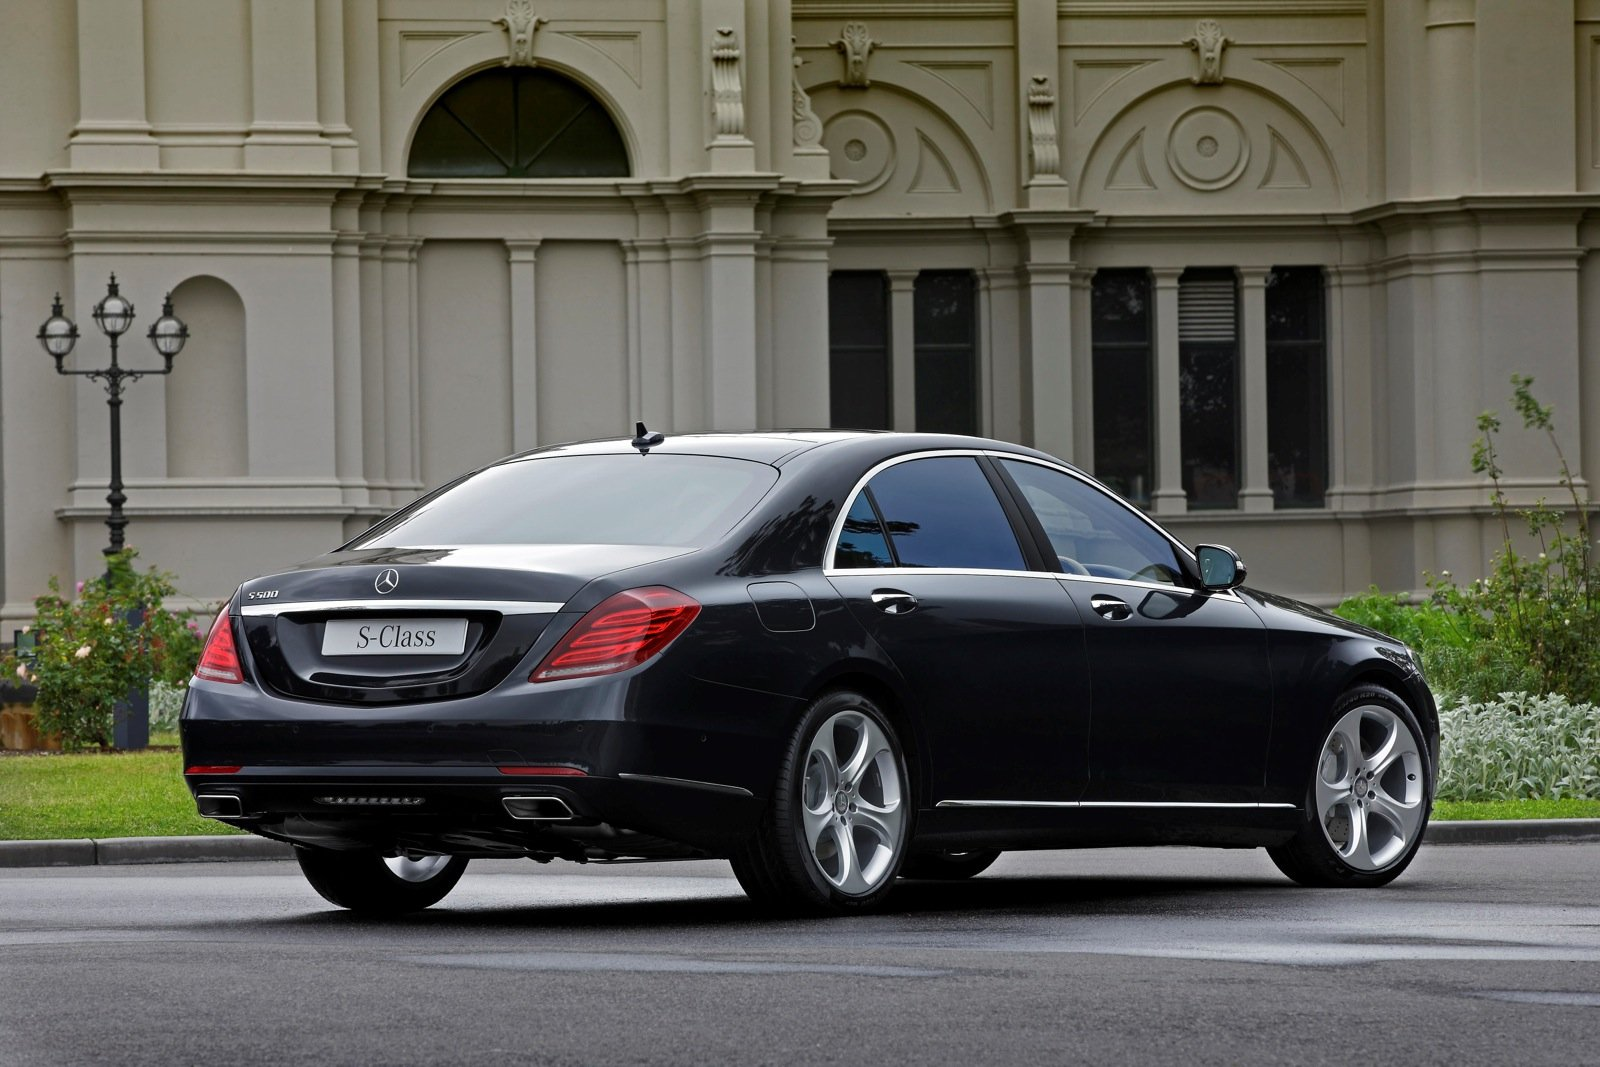 2014 mercedes benz s class unveiled in melbourne photos caradvice. Black Bedroom Furniture Sets. Home Design Ideas